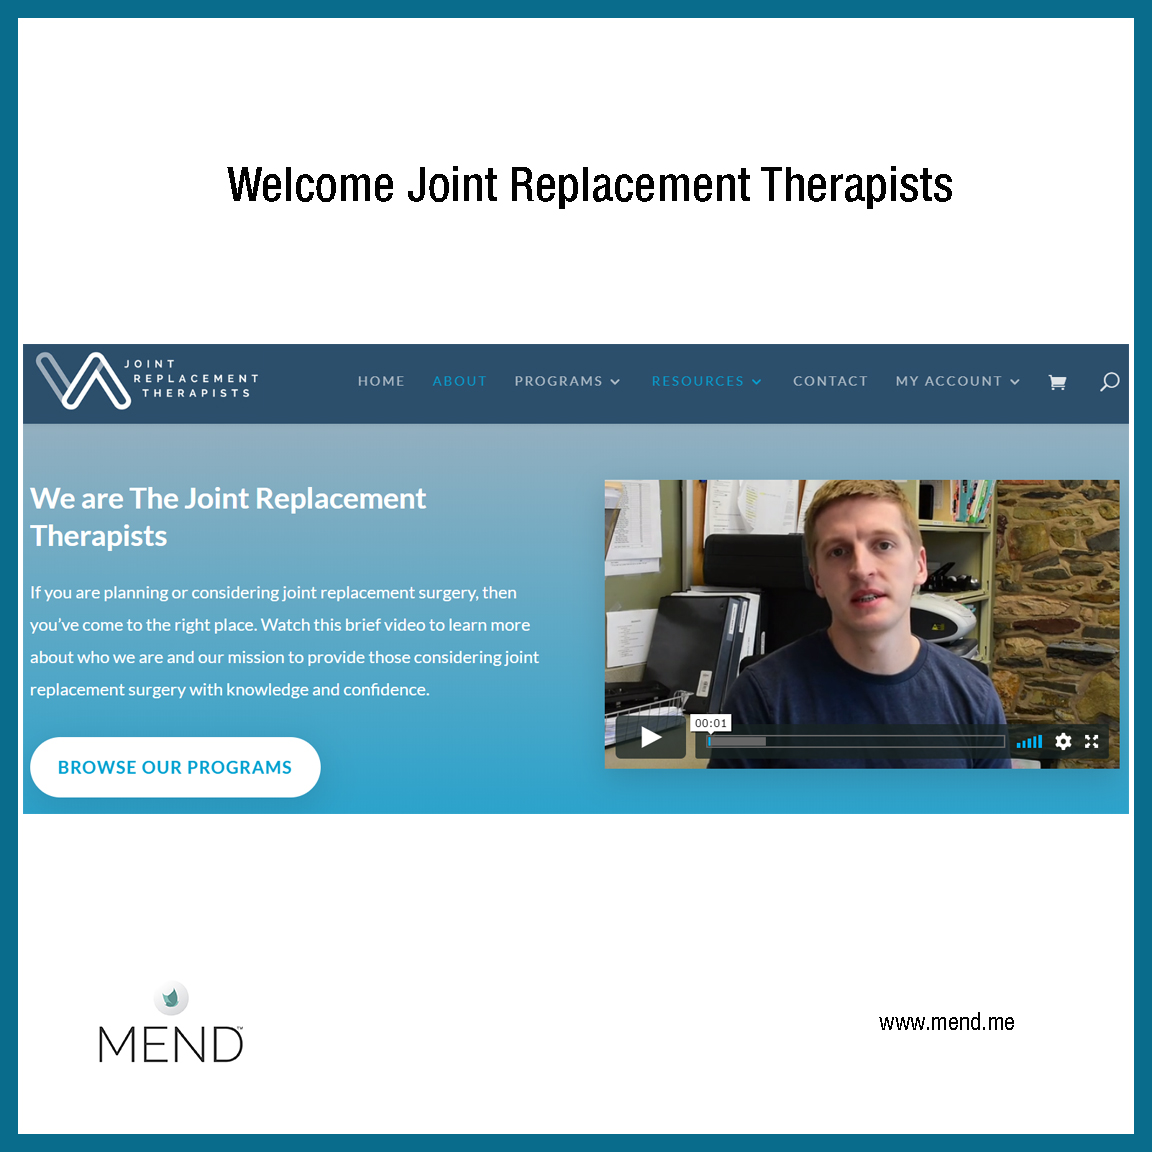 MEND to work with Joint Replacement Therapists